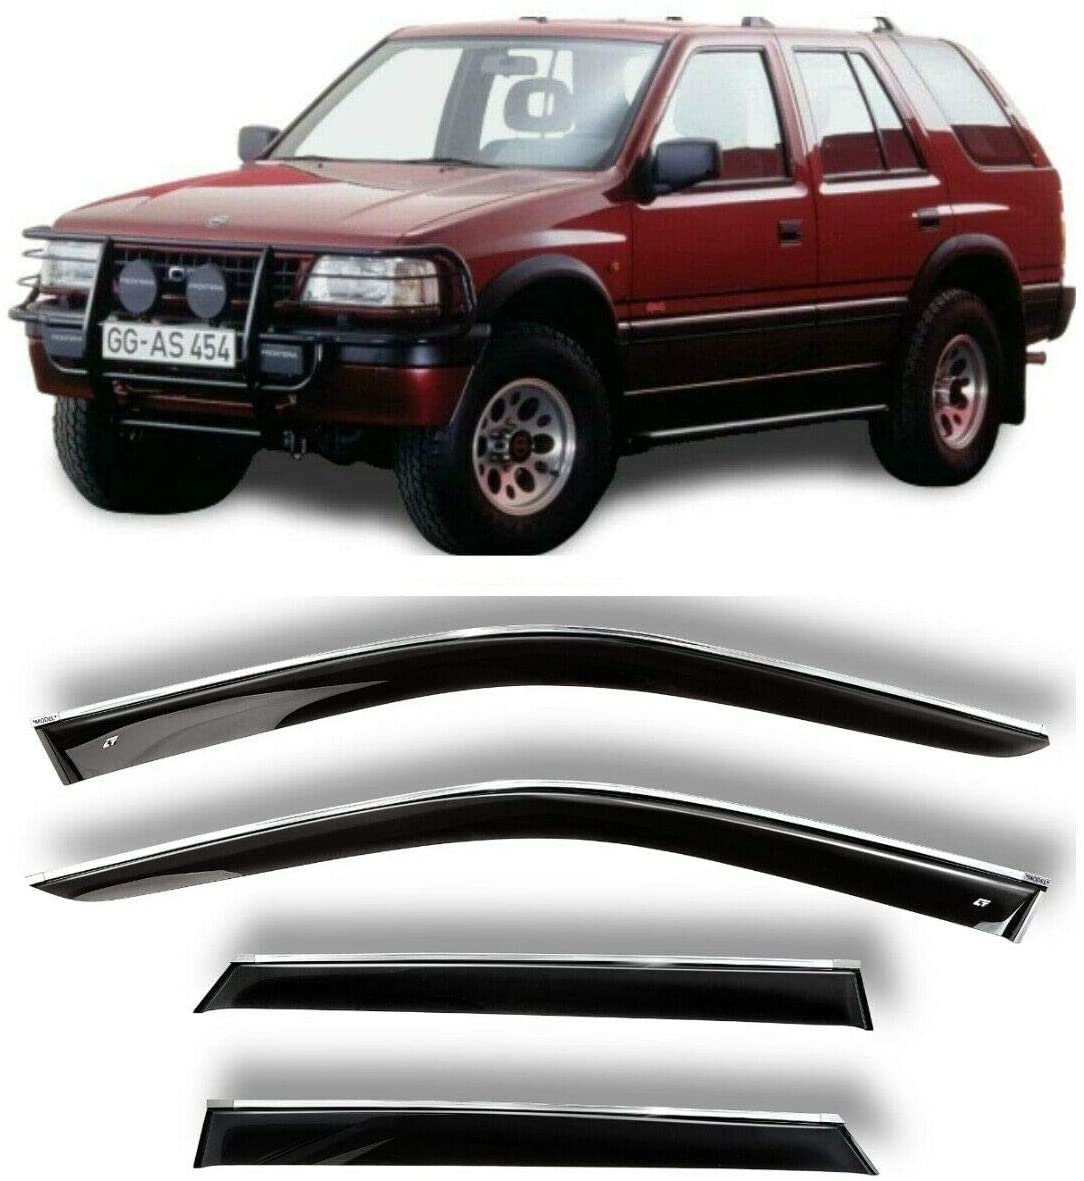 Chrome Window Deflector Set of 4-Pieces - Car Trim Side Vent Shades - Air/Rain Guards Ventvisor Compatible with Opel Frontera A 1992-1998